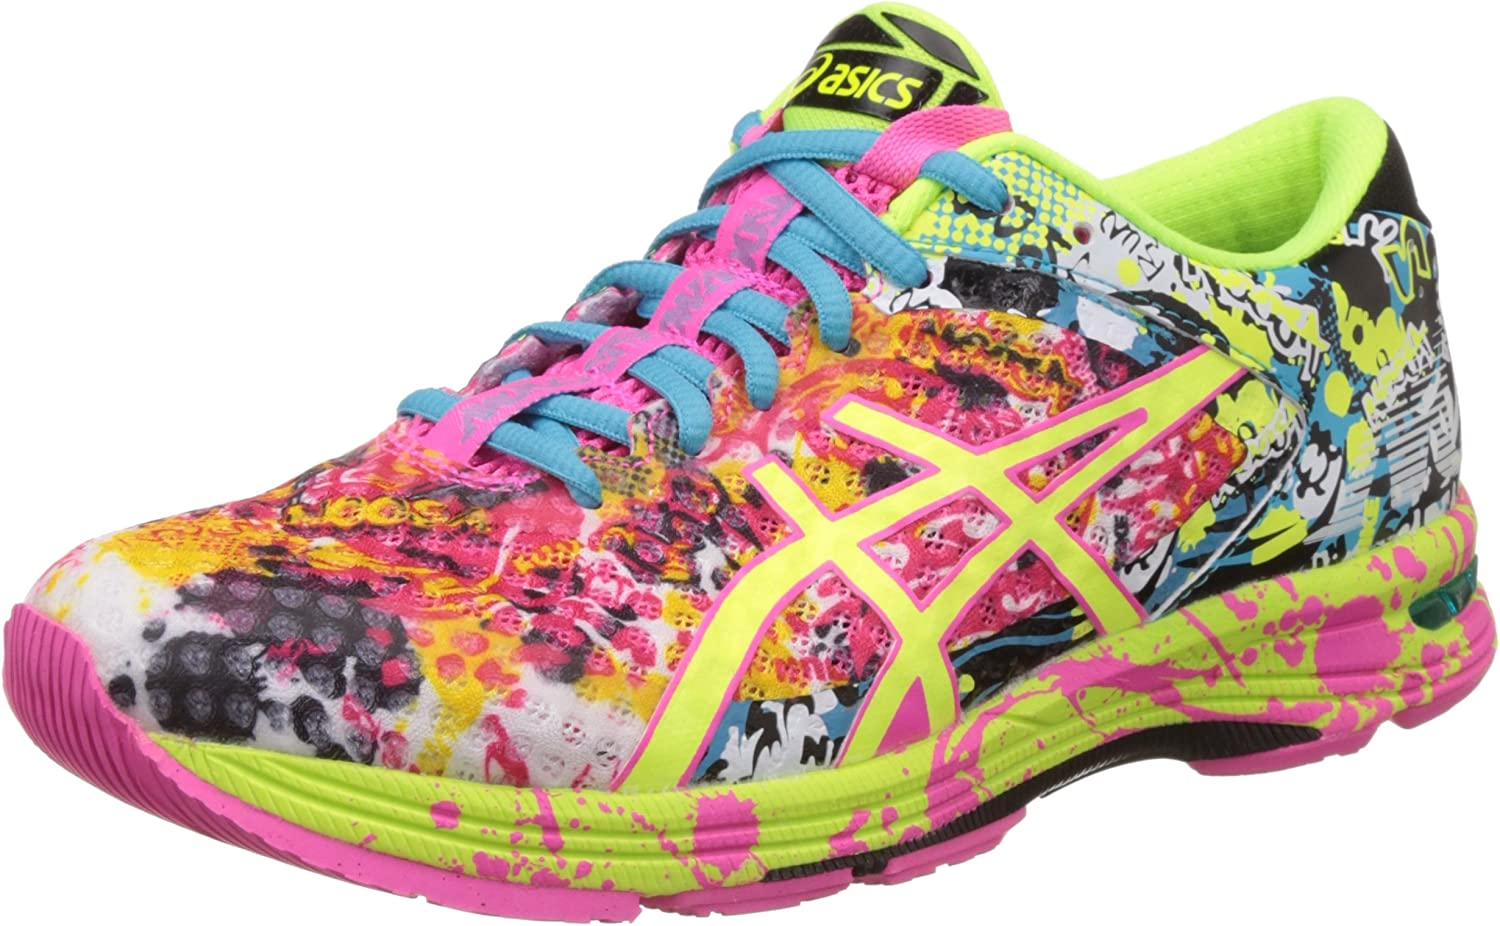 ASICS Womens Gel-Noosa Tri 11 Hot Pink, Flash Yellow and Black Running Shoes -7 UK/India (40.5 EU)(9 US): Amazon.es: Zapatos y complementos